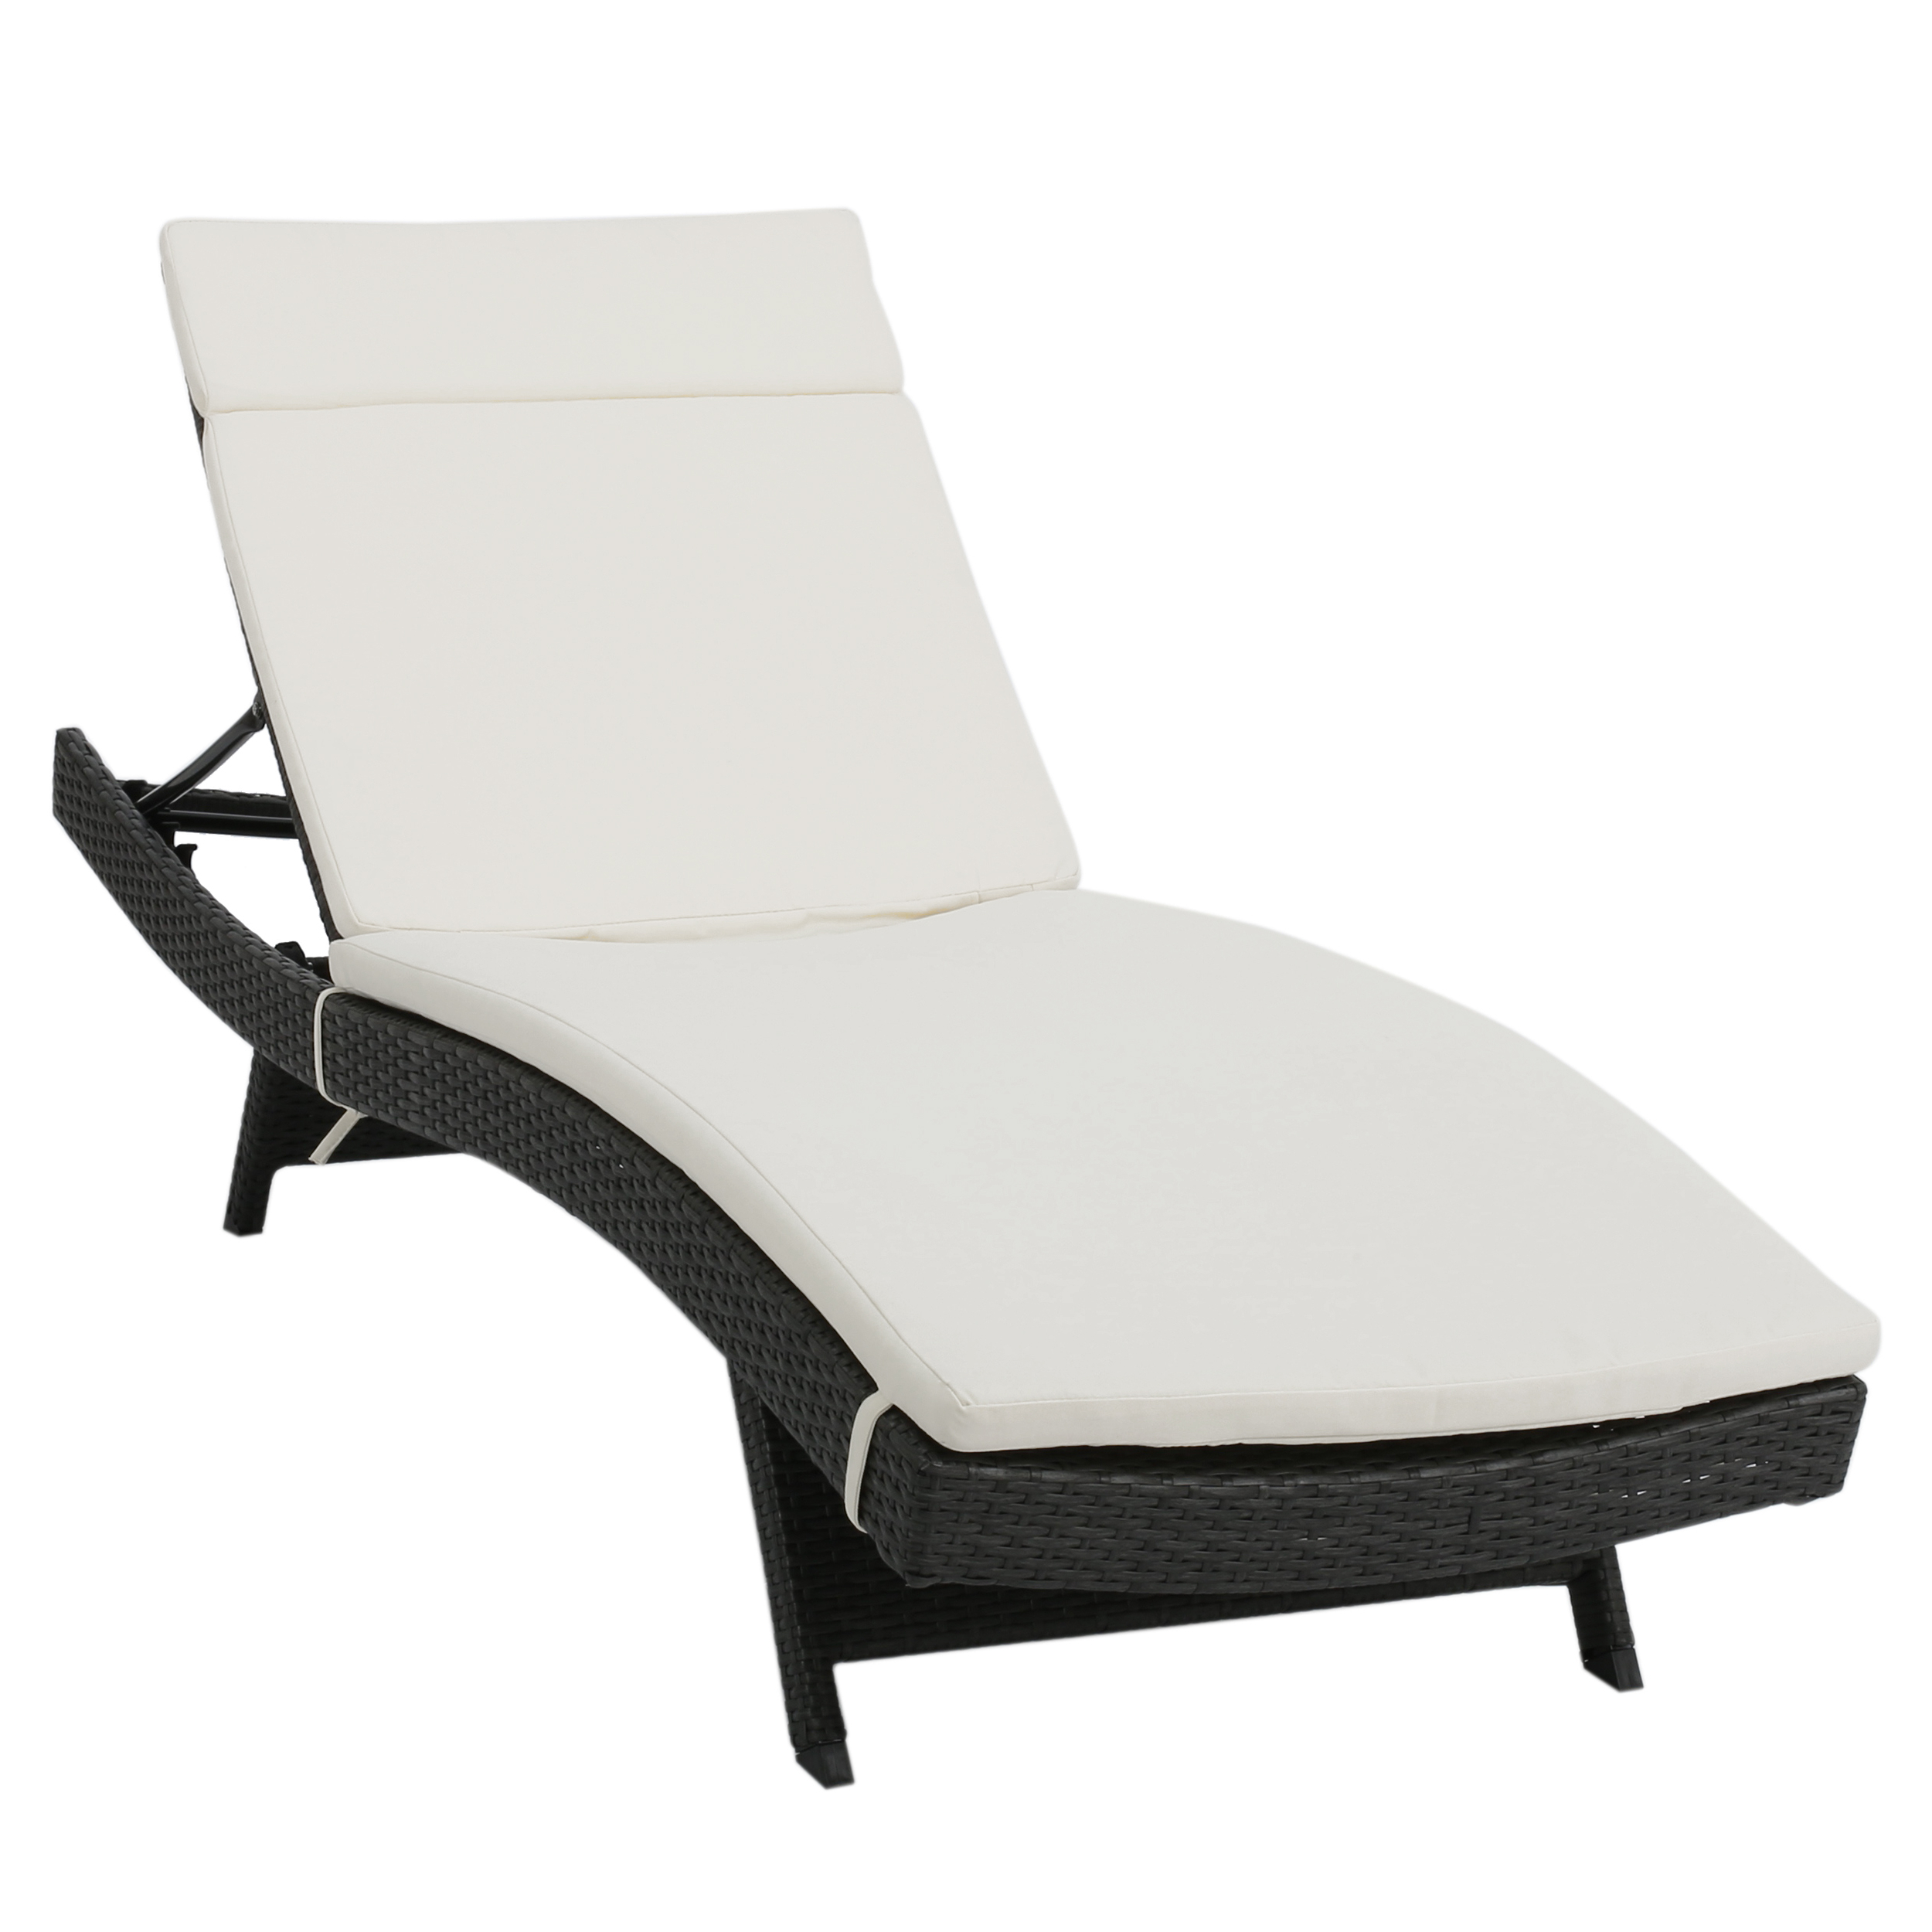 Raleigh Outdoor Wicker Adjustable Chaise Lounge With Cushion, Single Set,  Multiple Colors Inside Preferred Outdoor Wicker Adjustable Chaise Lounges With Cushions (View 20 of 25)